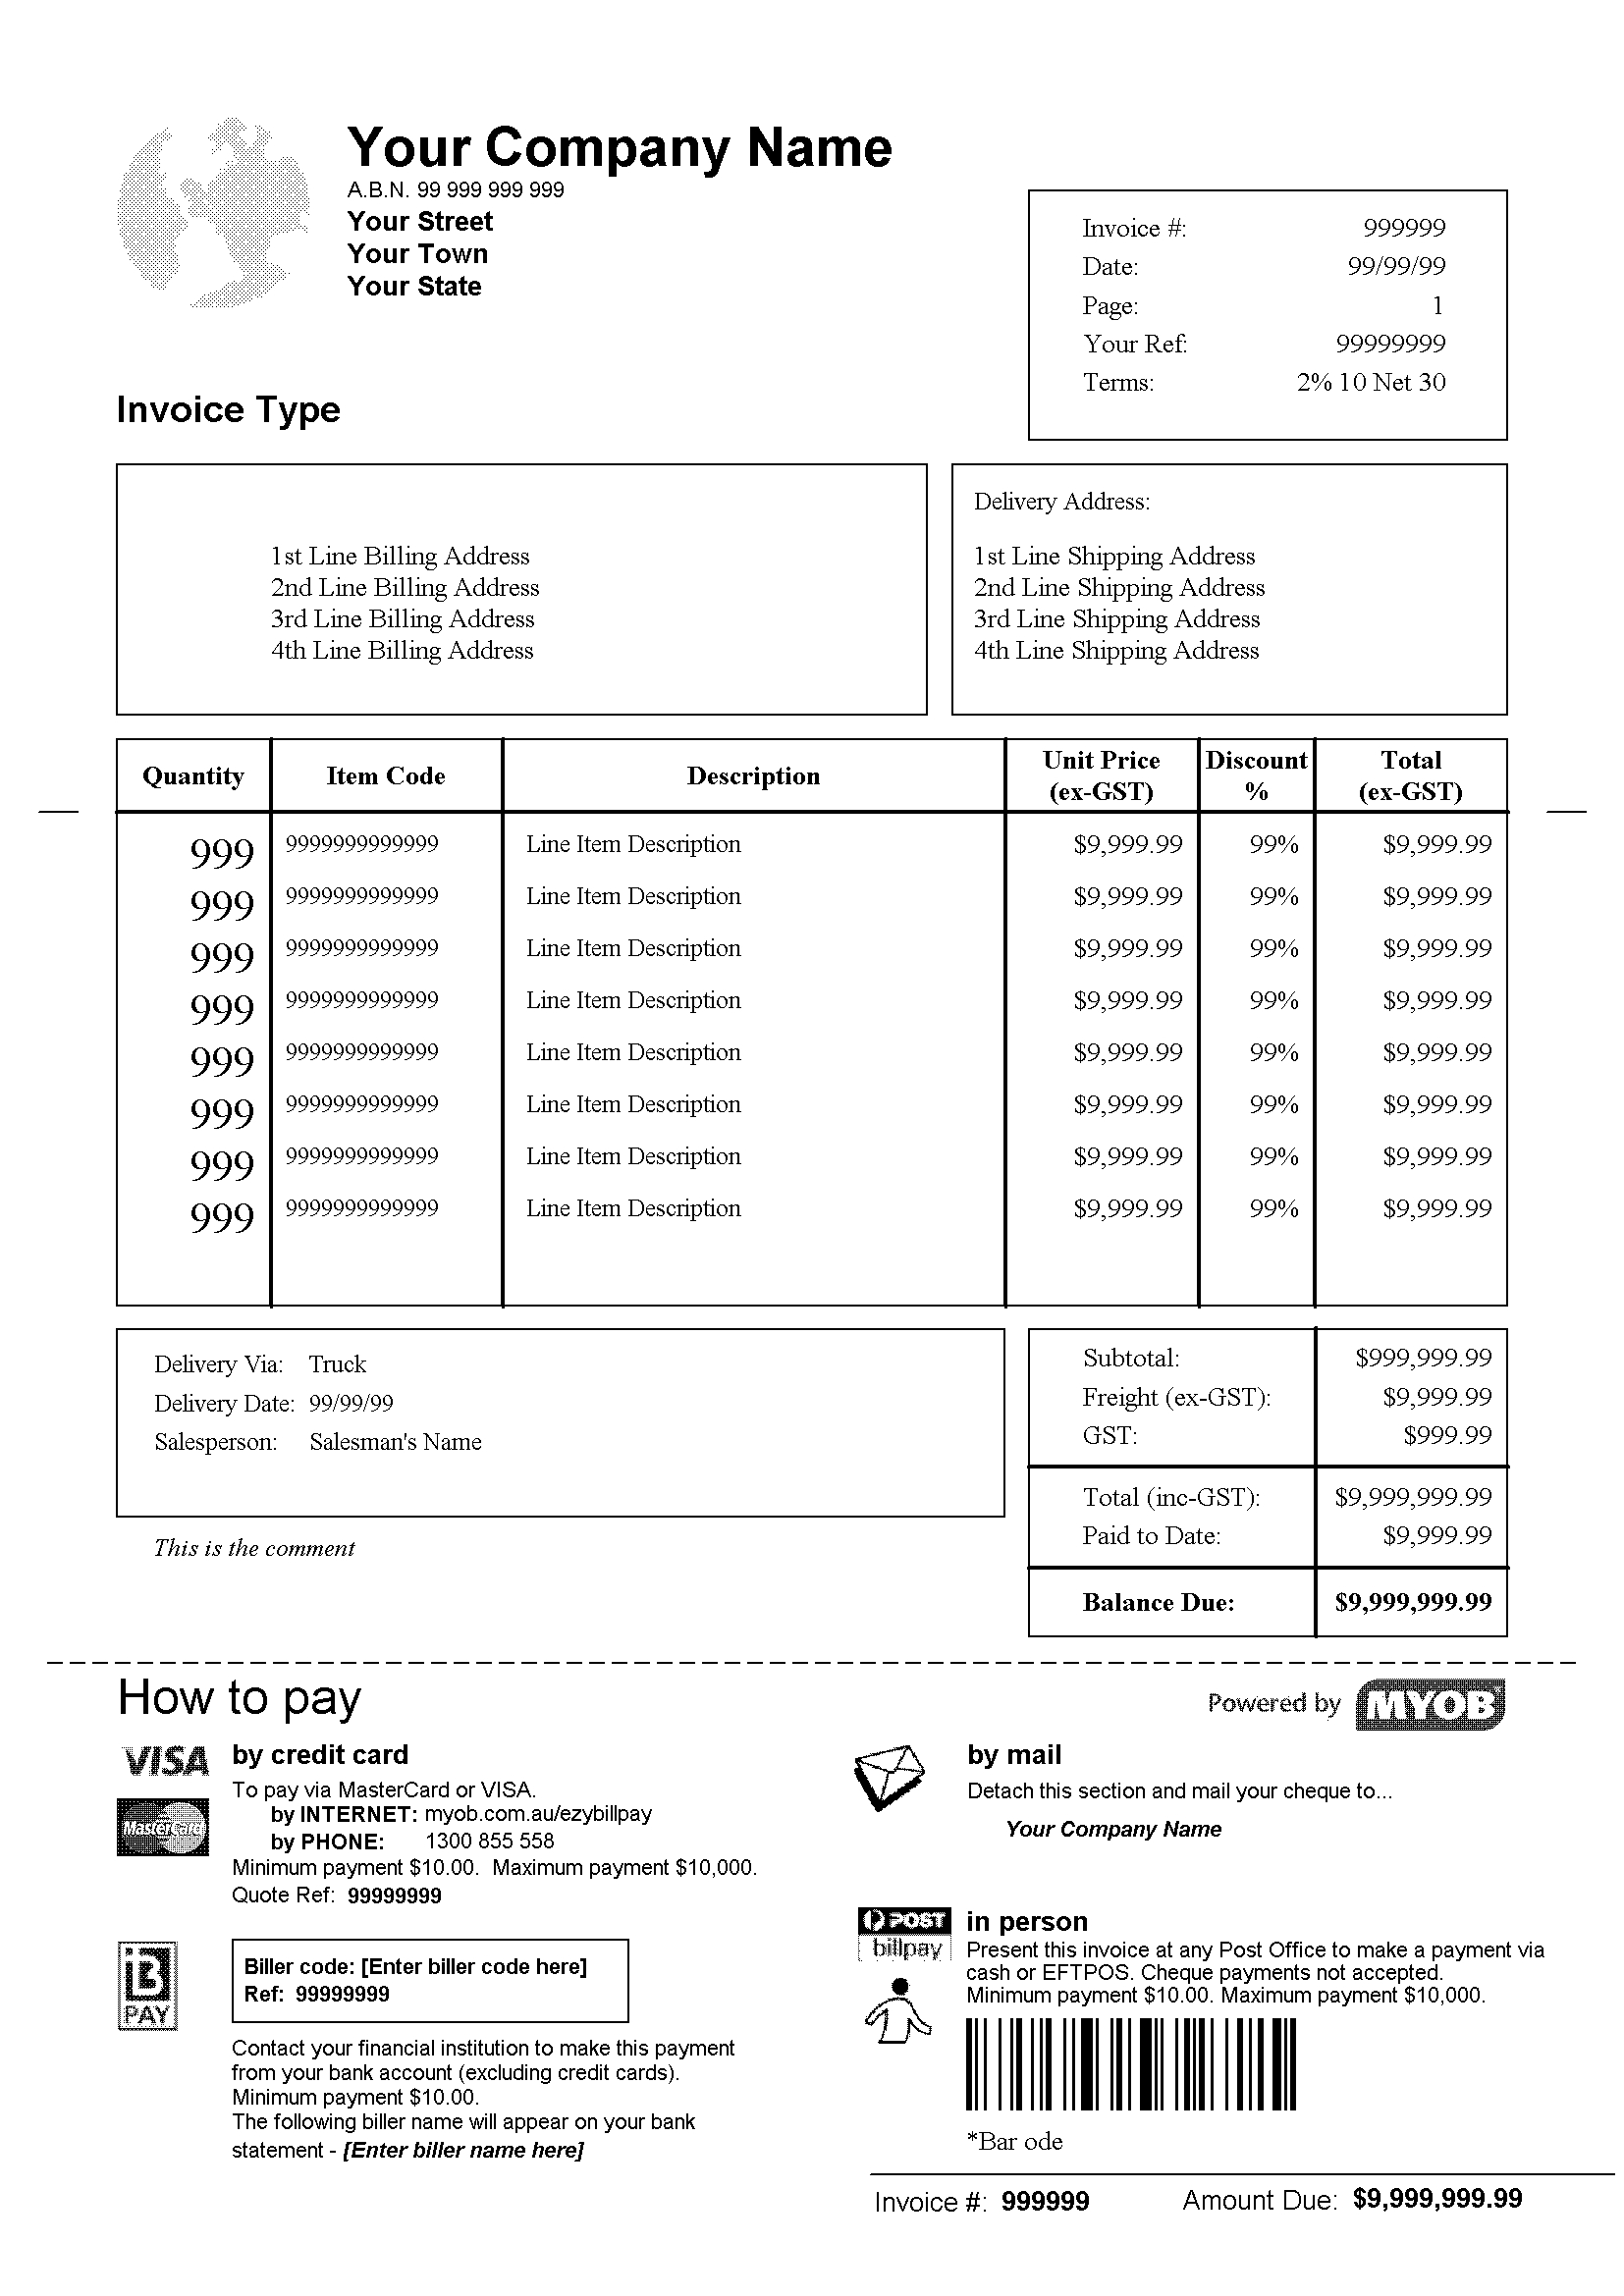 Retail Invoice Template Invoice Example - Personalized invoice template